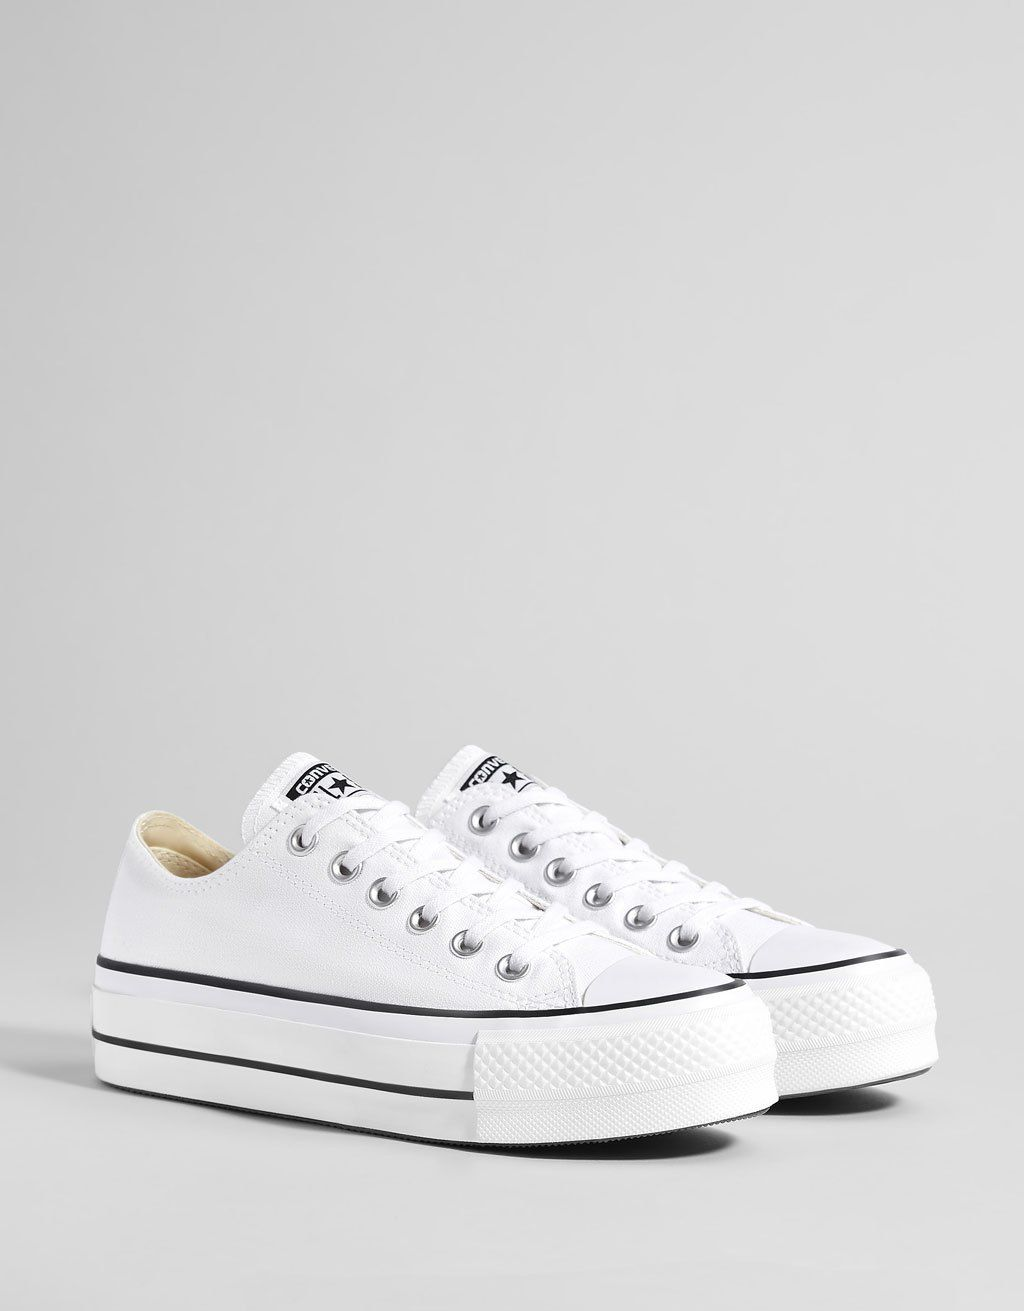 converse toile blanche femme